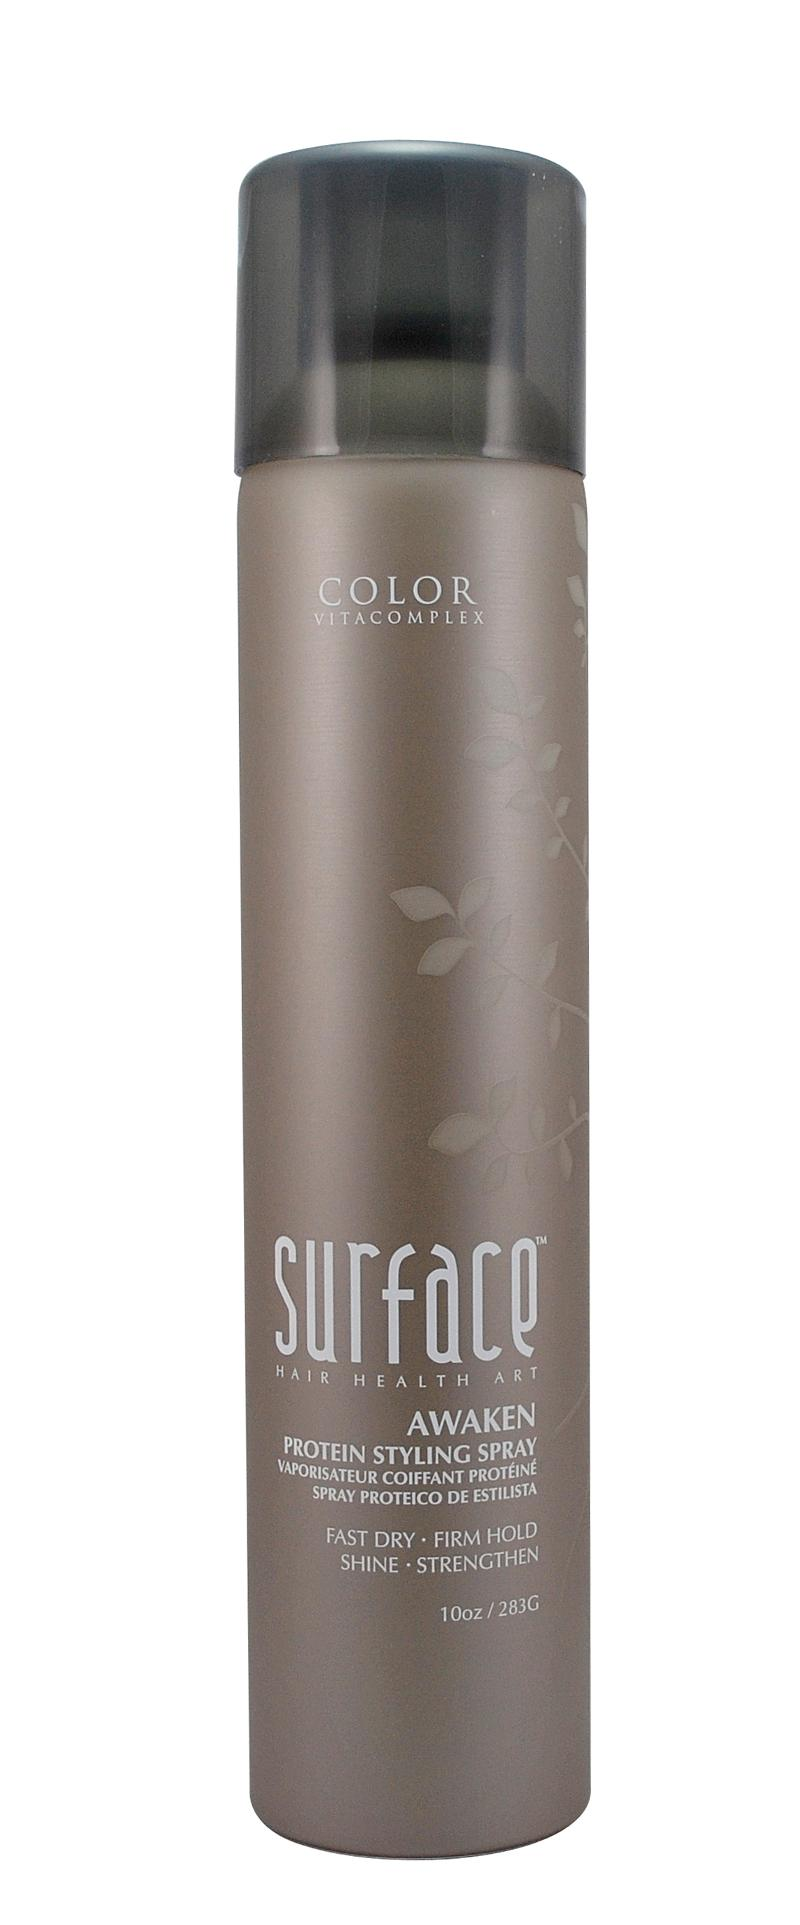 June News From Surface Hair